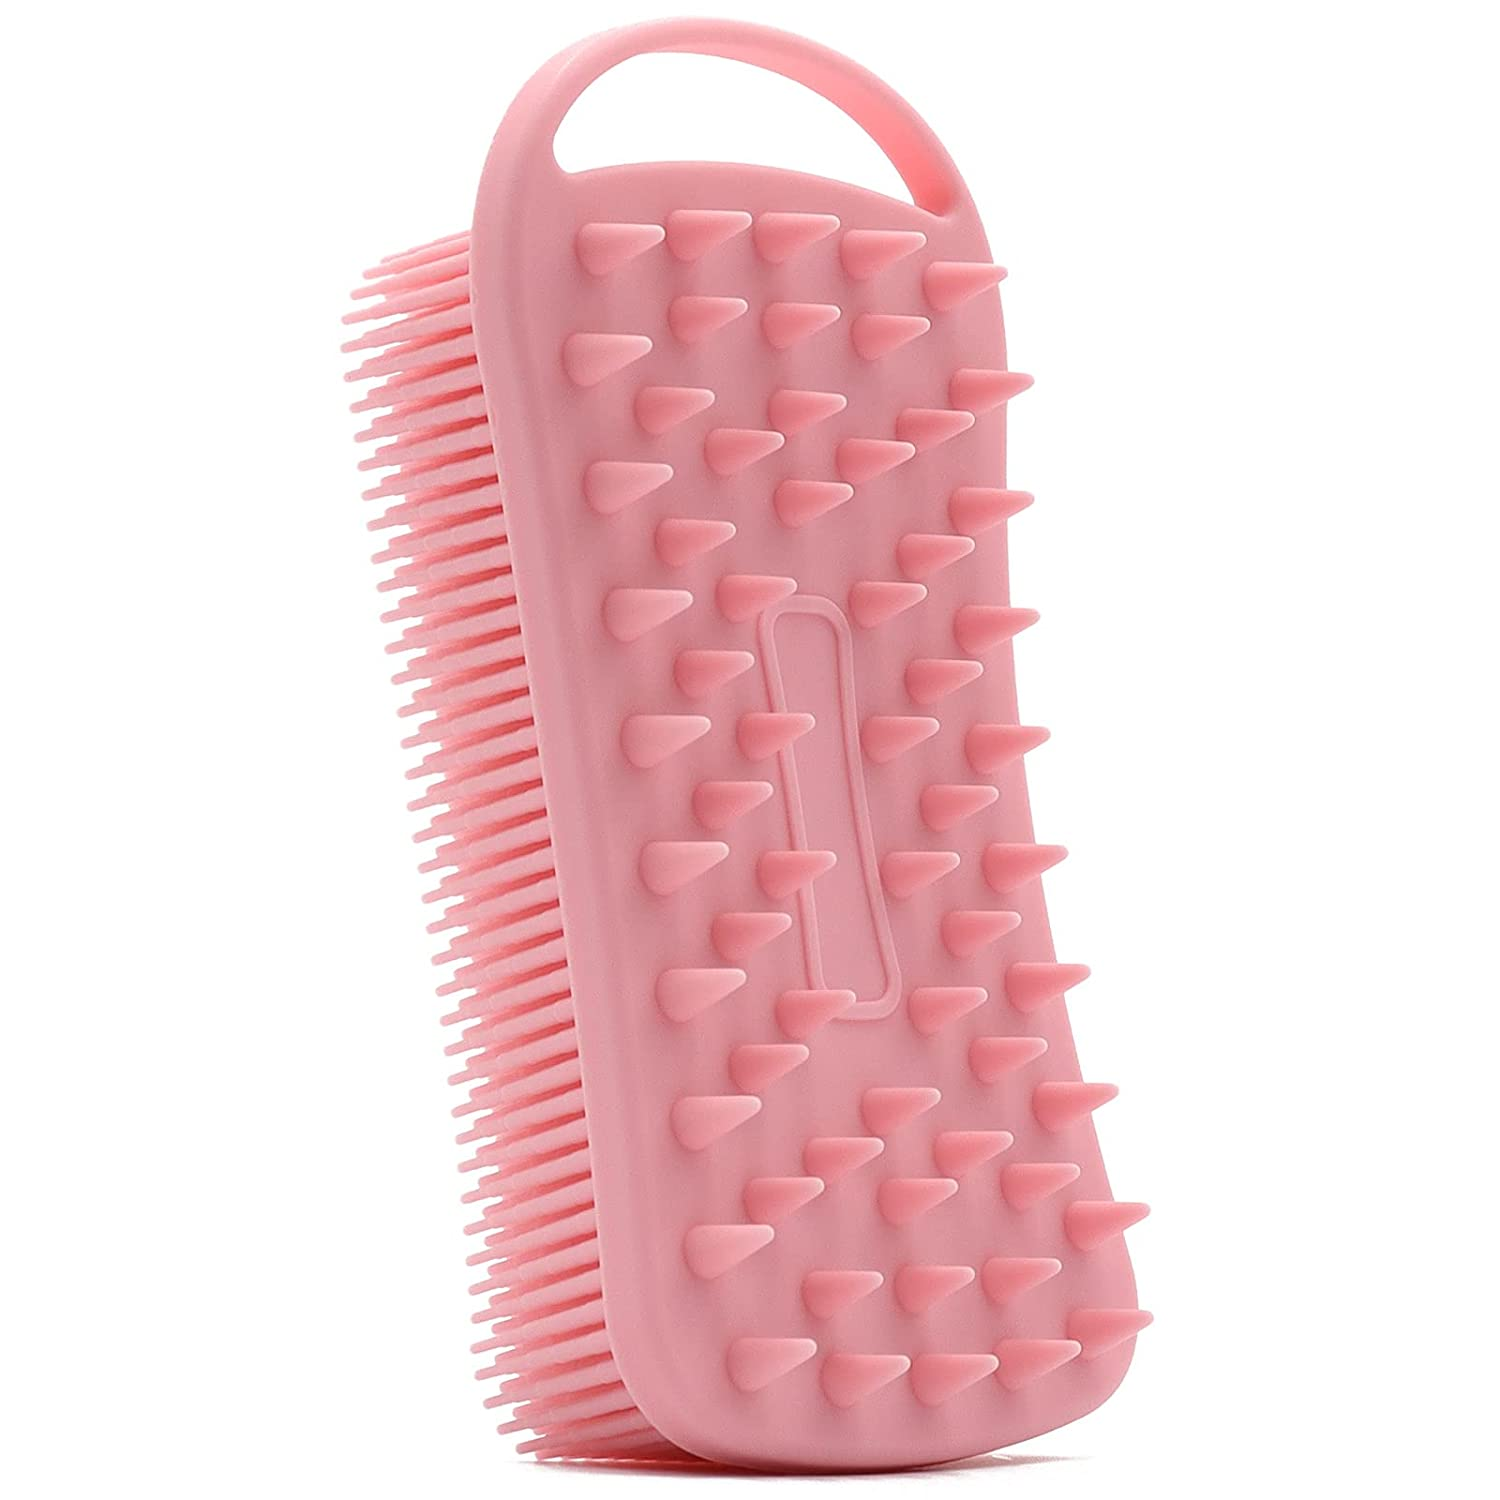 List price Silicone Body Scrubber Max 54% OFF 2 in 1 Soft Si for Shower